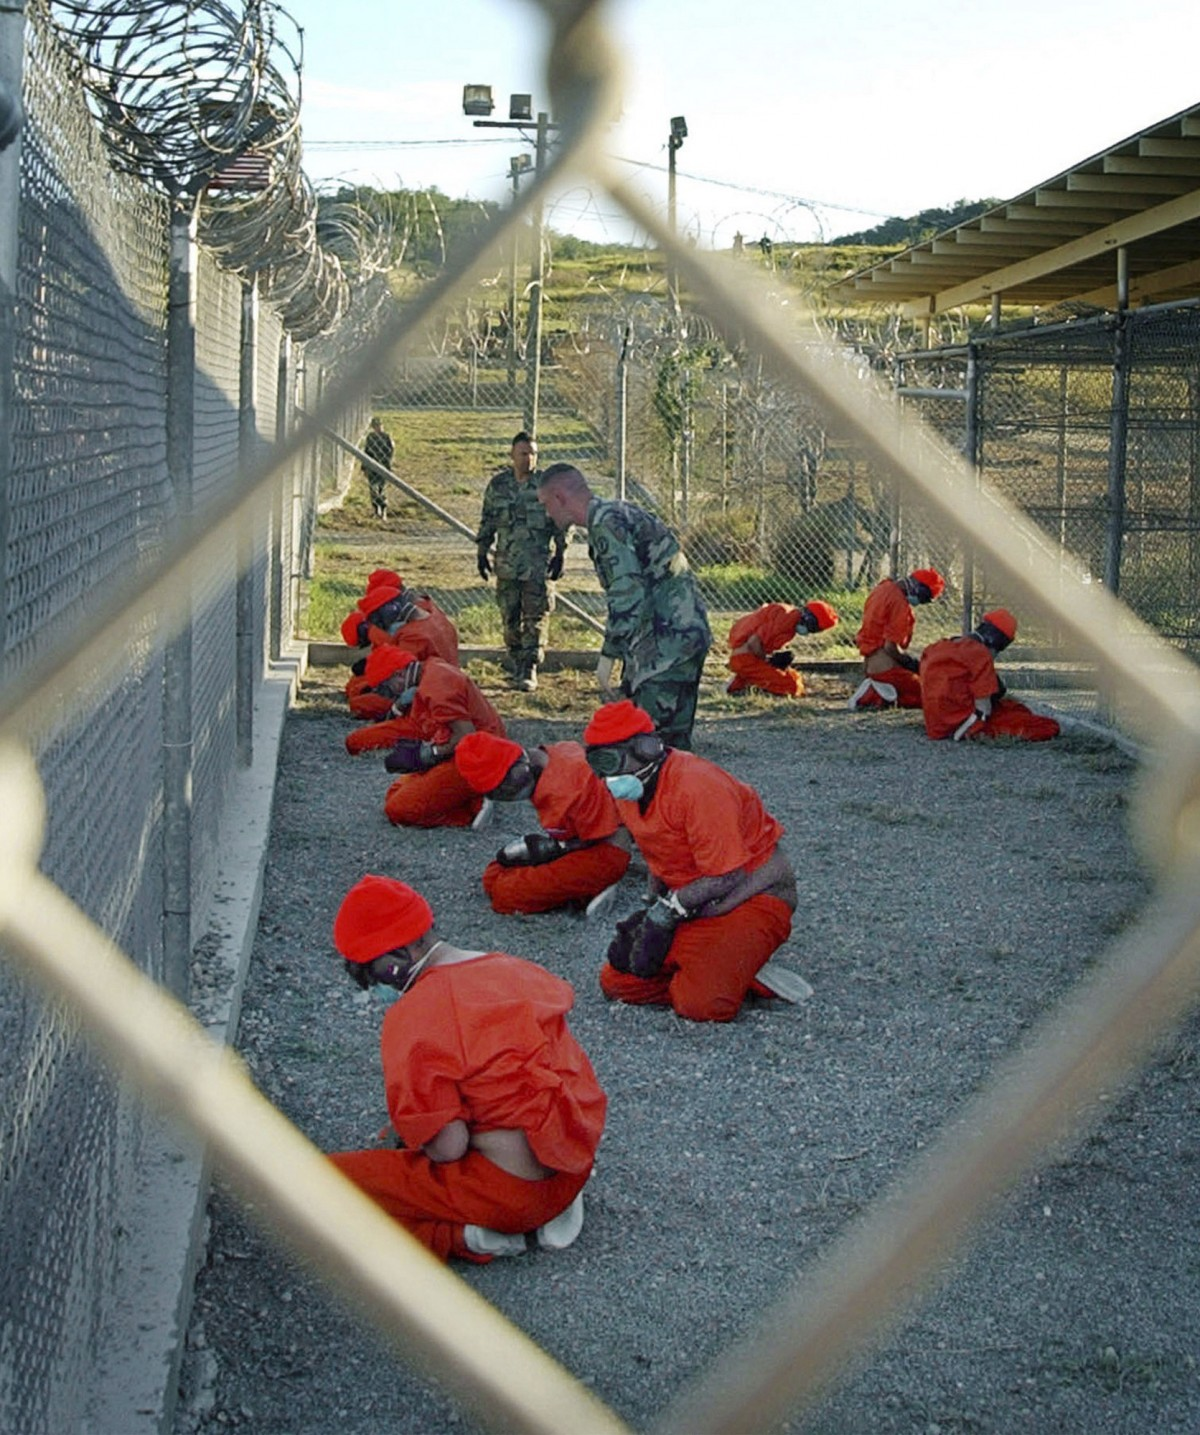 In this Jan. 11, 2002 file photo, released by the U.S. Department of Defense, detainees wearing orange jump suits sit in a holding area as military police patrol during in-processing at the temporary detention facility Camp X-Ray on Guantanamo Bay U.S. Naval Base in Cuba. (AP Photo/U.S. Navy, Shane T.McCoy, File)